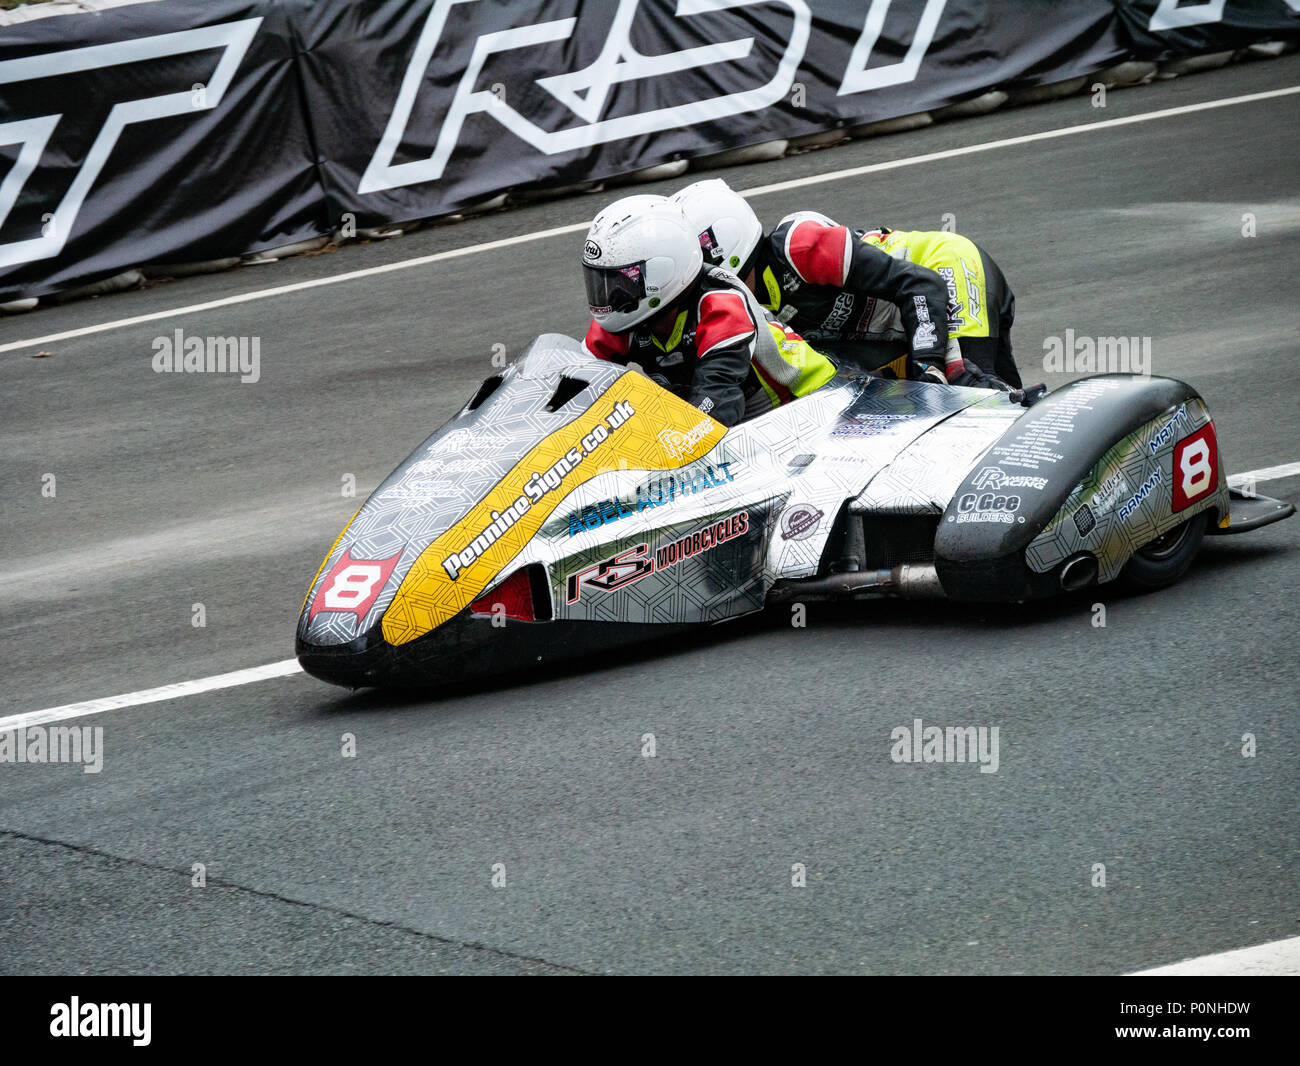 Number 8, Steve Ramsden / Matty Ramsden, sidecar rider and passenger, Isle of Man TT 2018. Tourist Trophy road race, mountain course Stock Photo